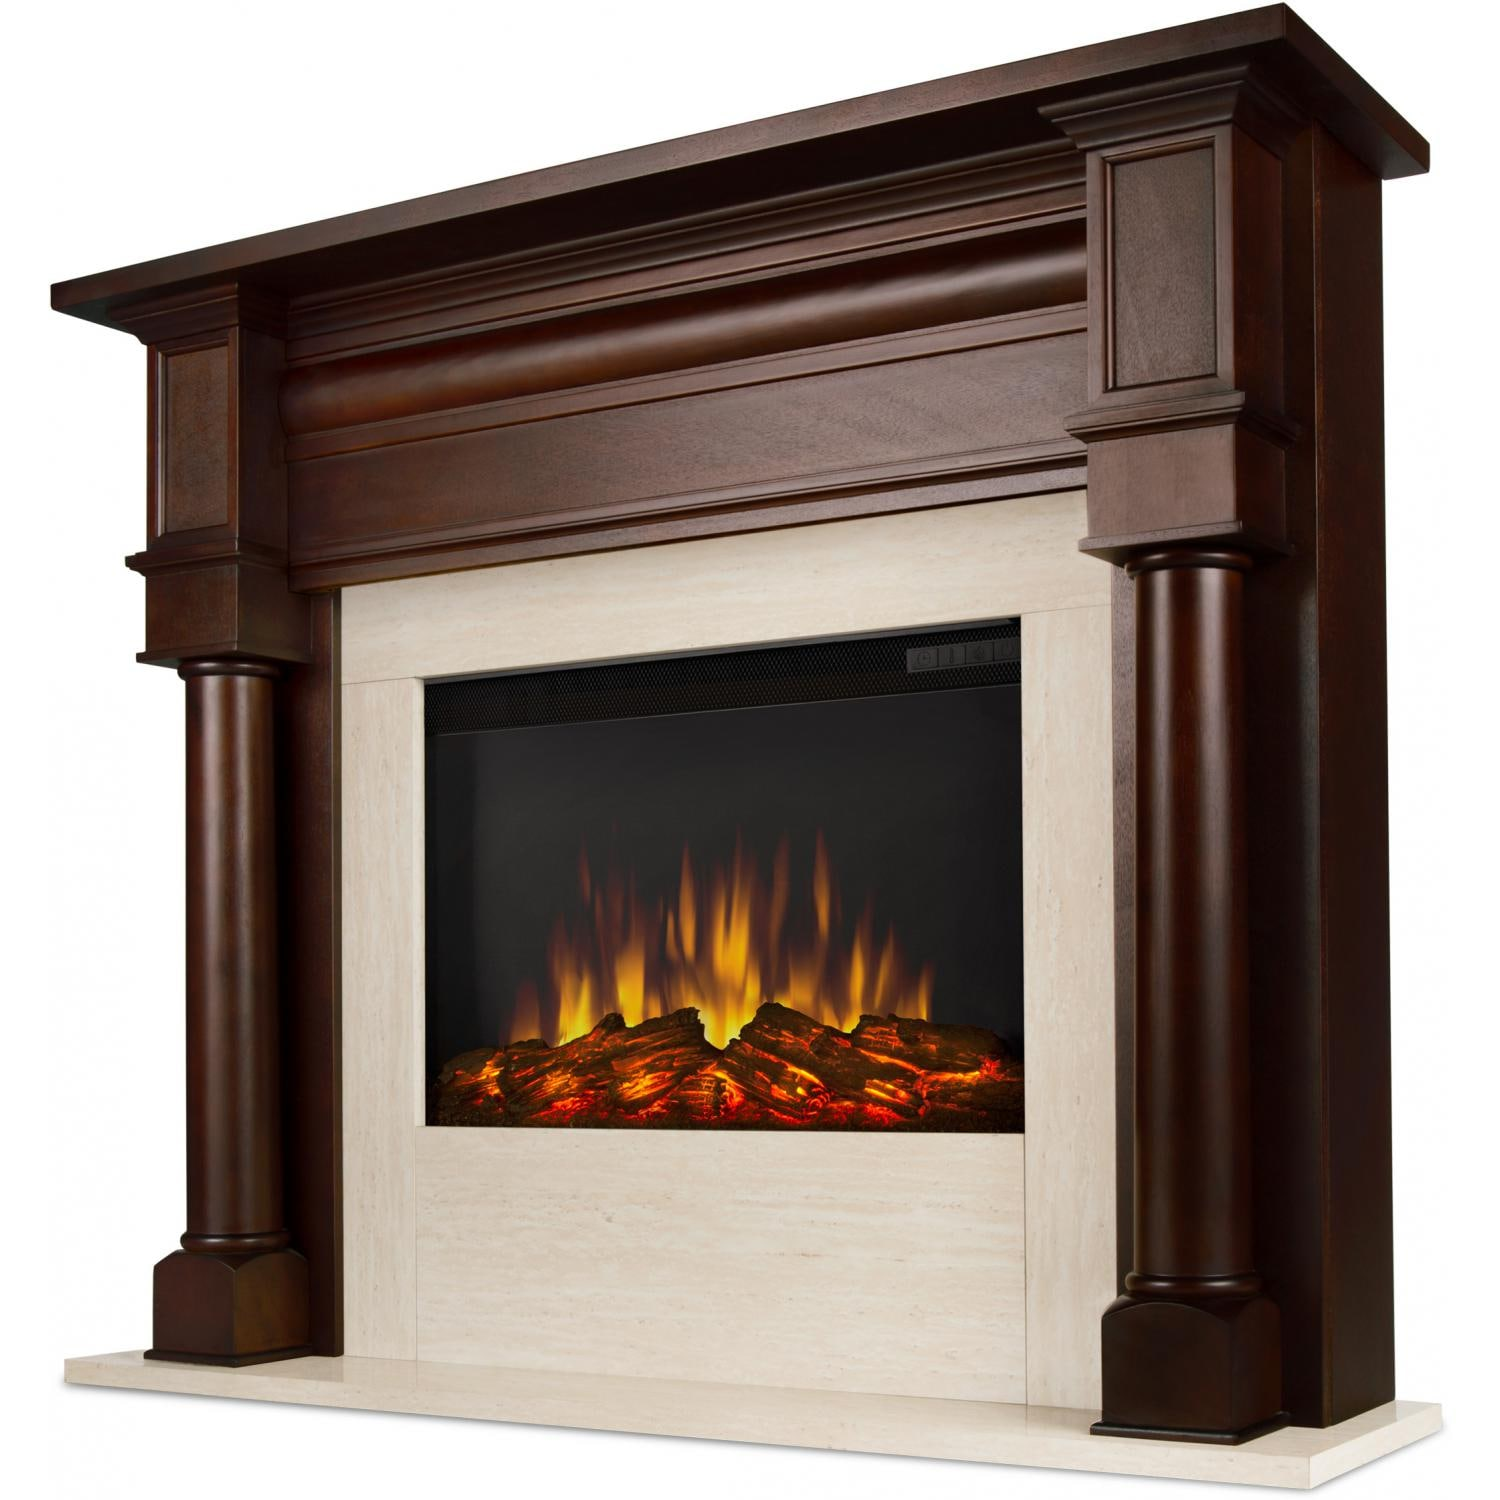 Real flame berkeley 47 inch electric fireplace with mantel for Dark fireplace mantel